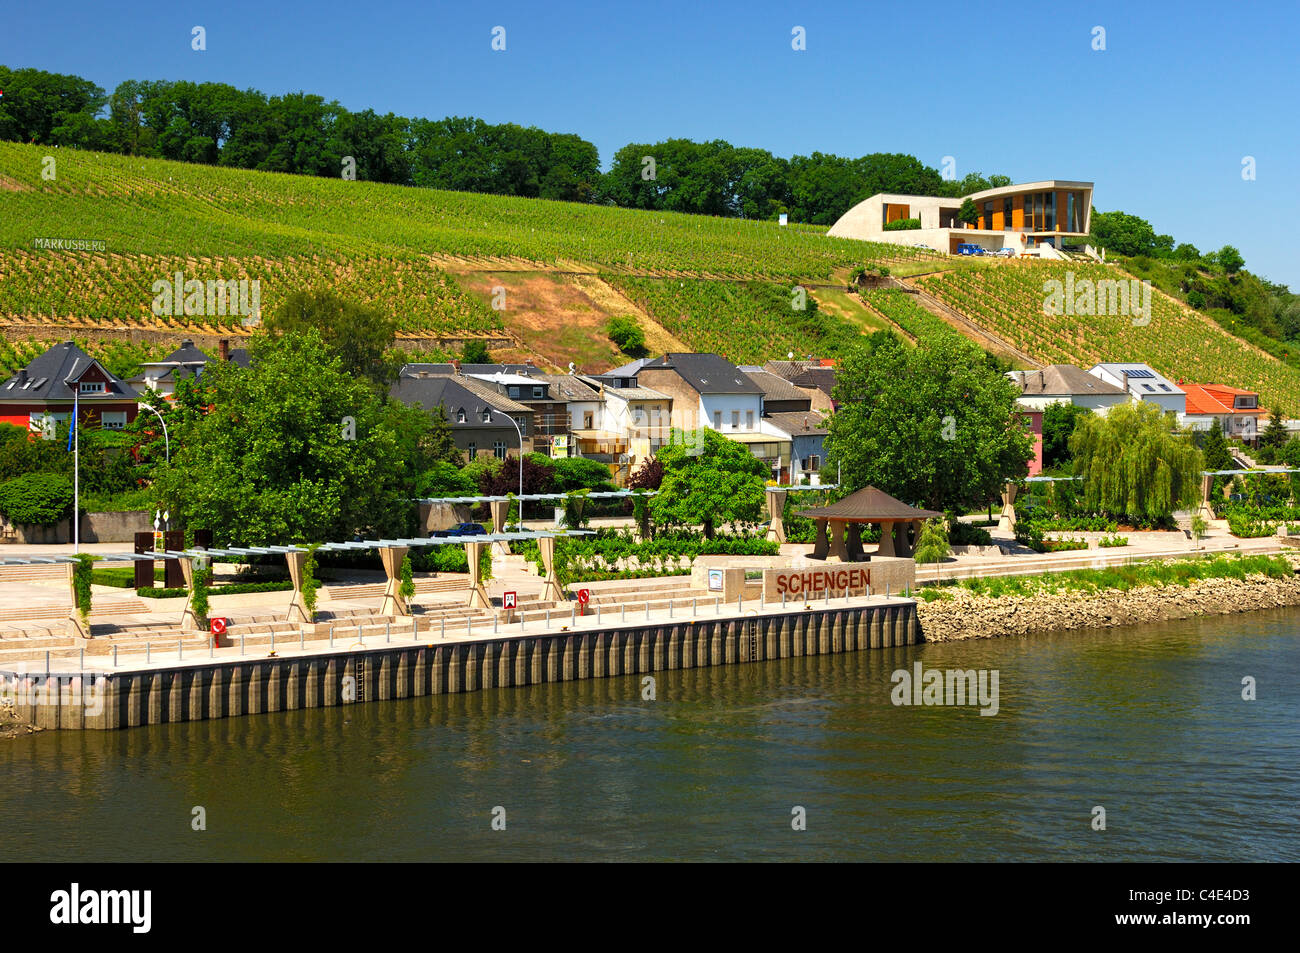 Landing stage and vineyards along the Moselle river in Schengen, Luxembourg - Stock Image